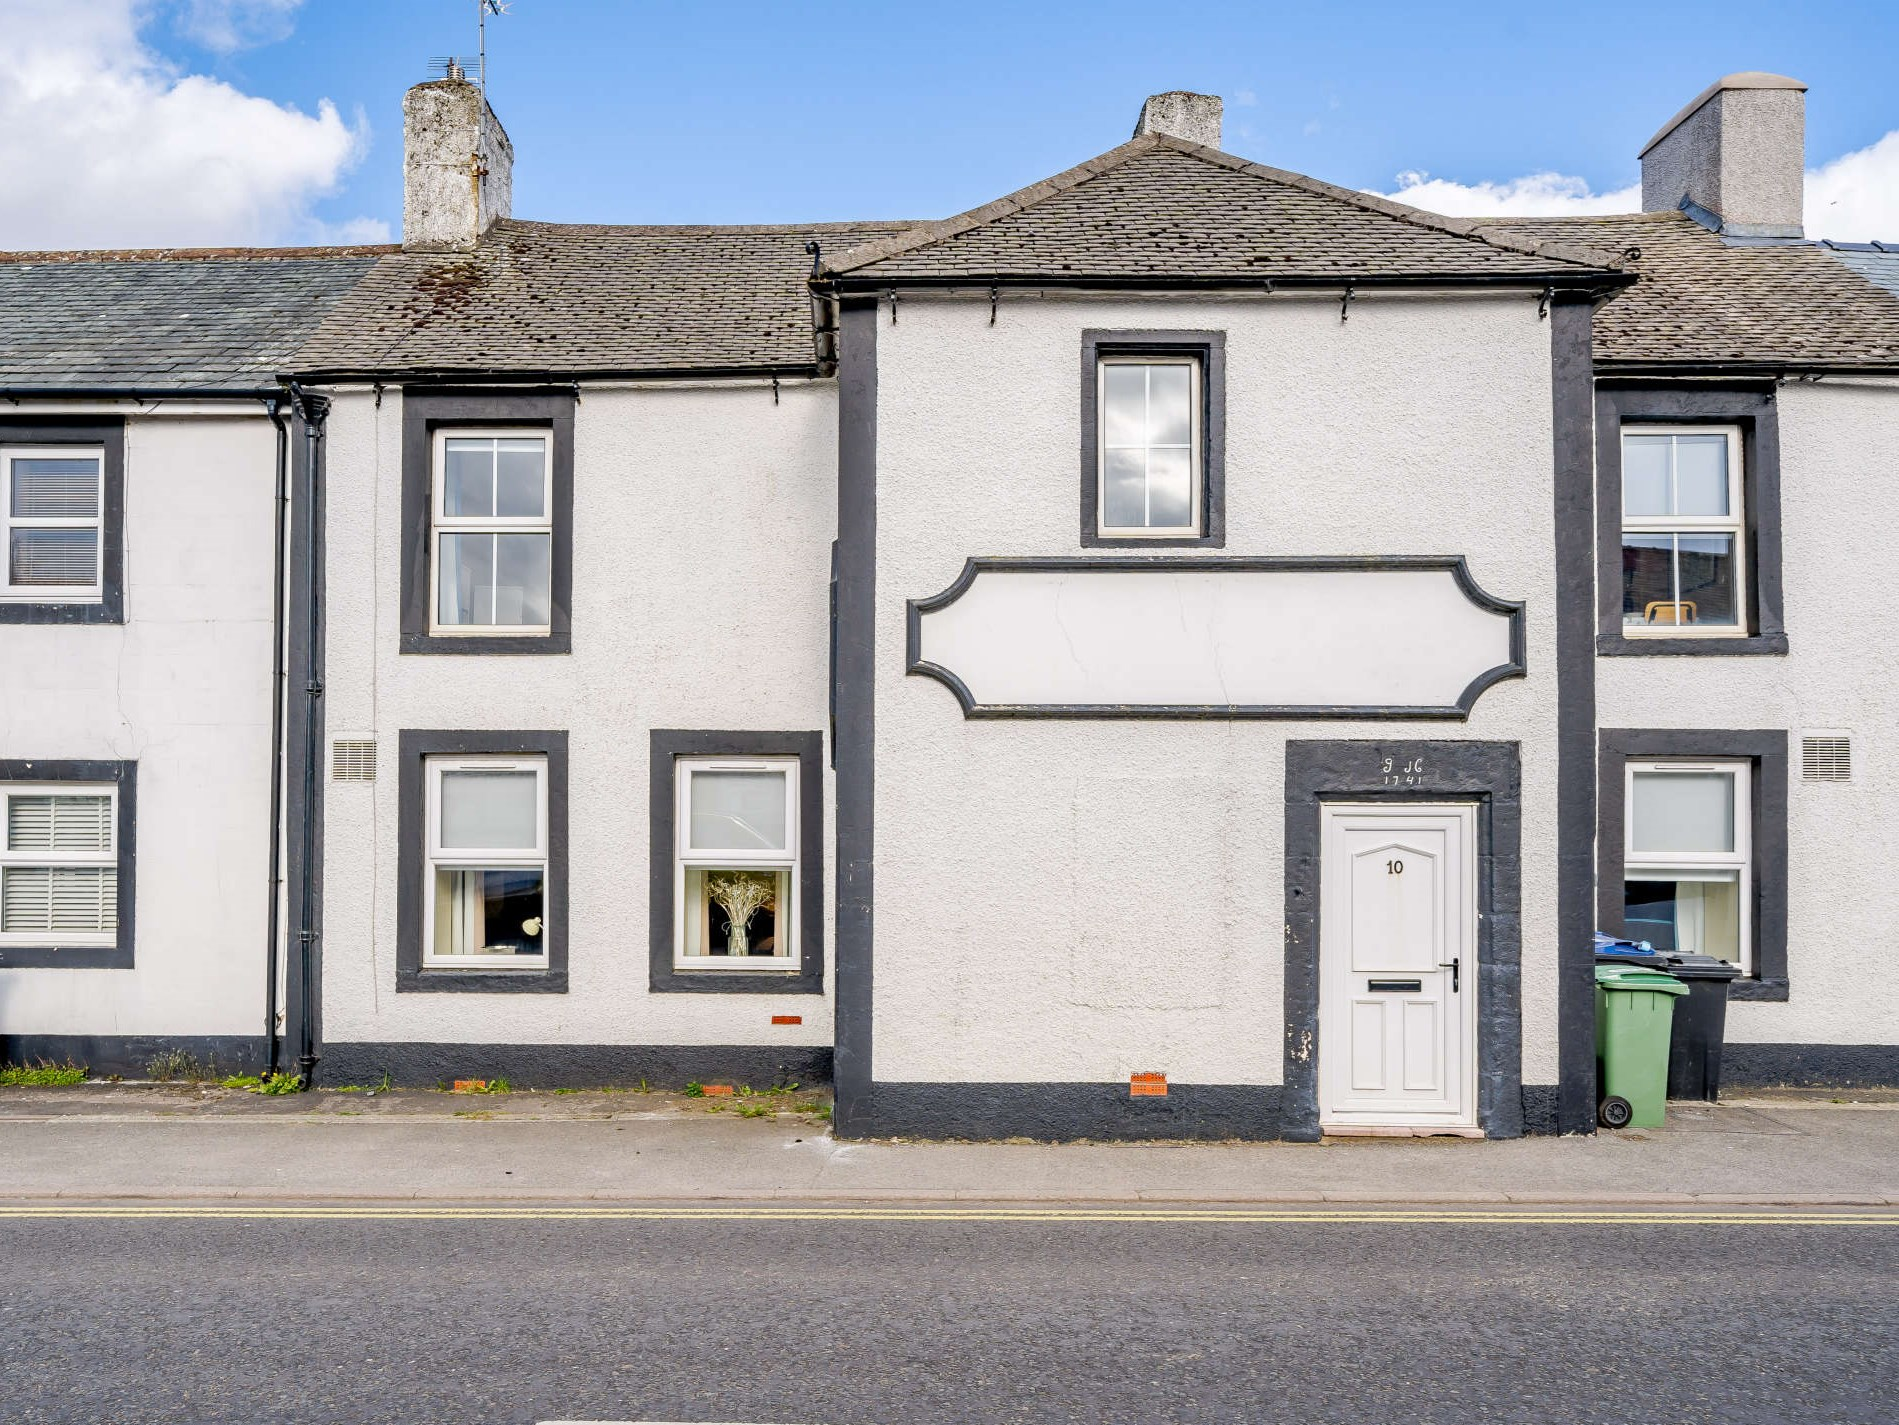 3 Bedroom Cottage in Cockermouth, Scottish Borders